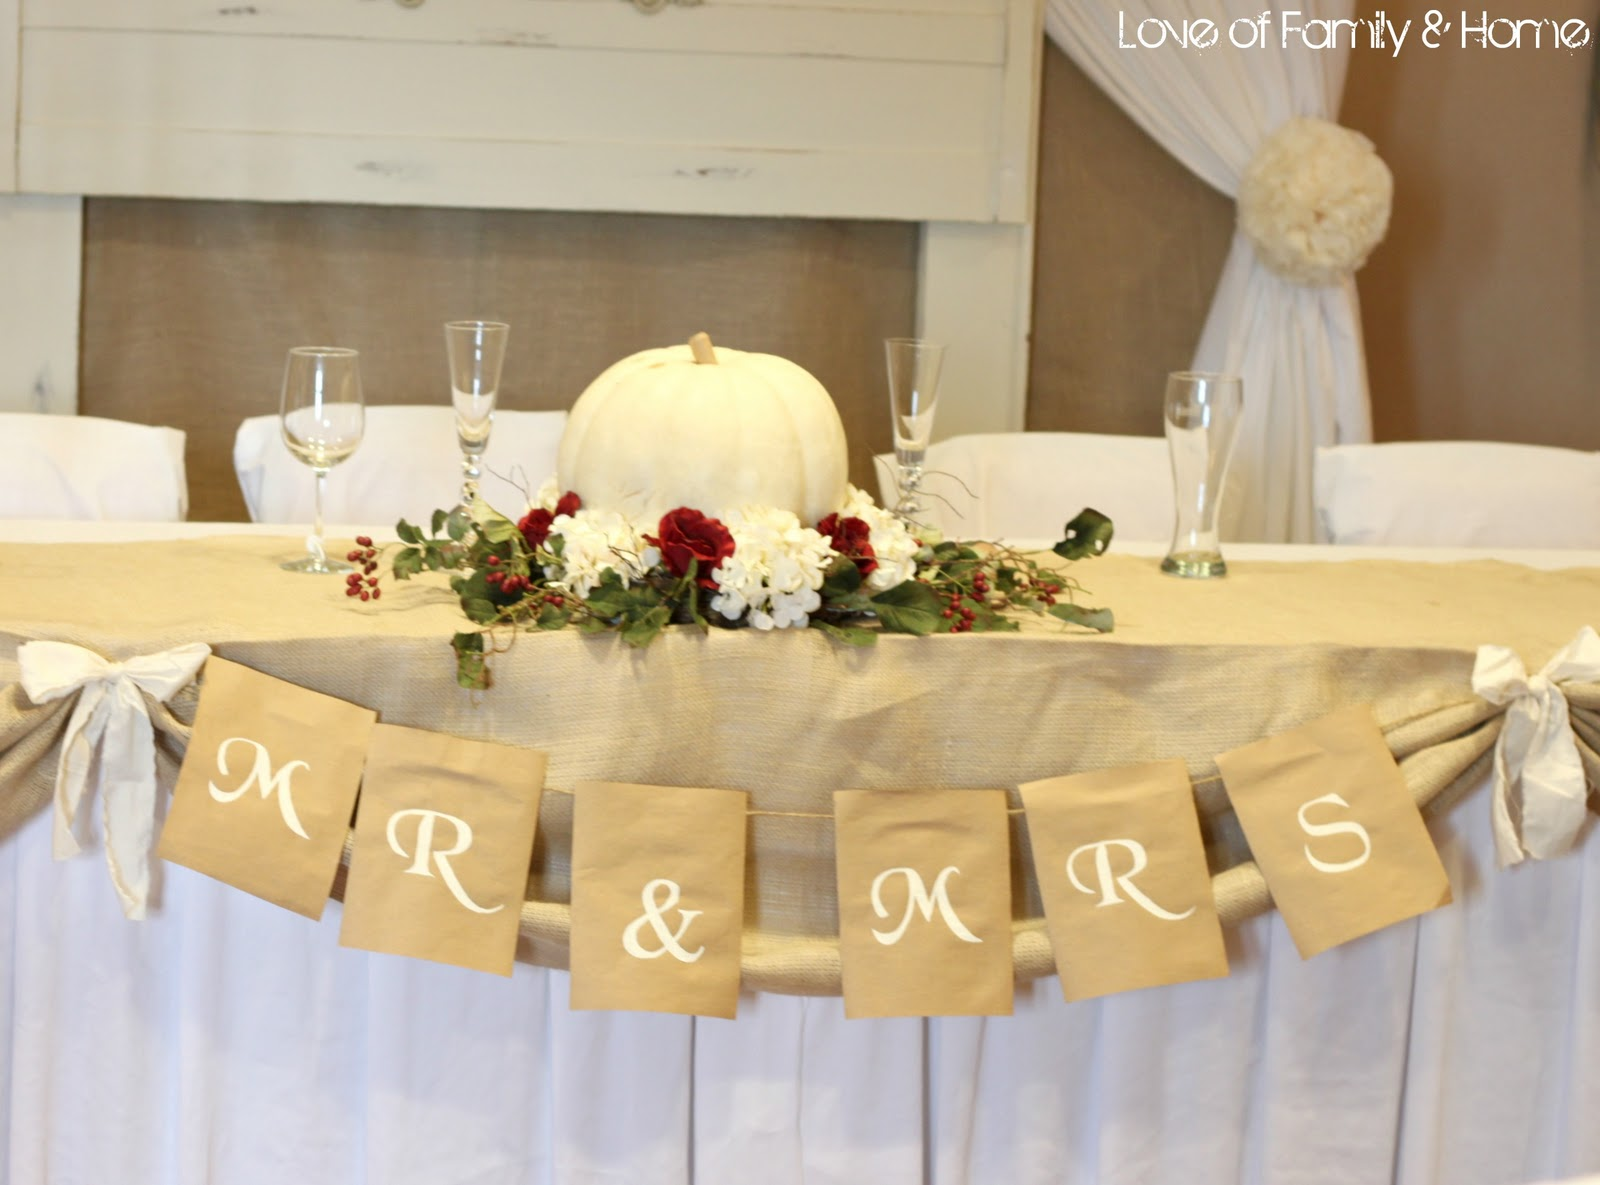 Do It Yourself Wedding: Do It Yourself Weddings: Rustic White Featuring Fall